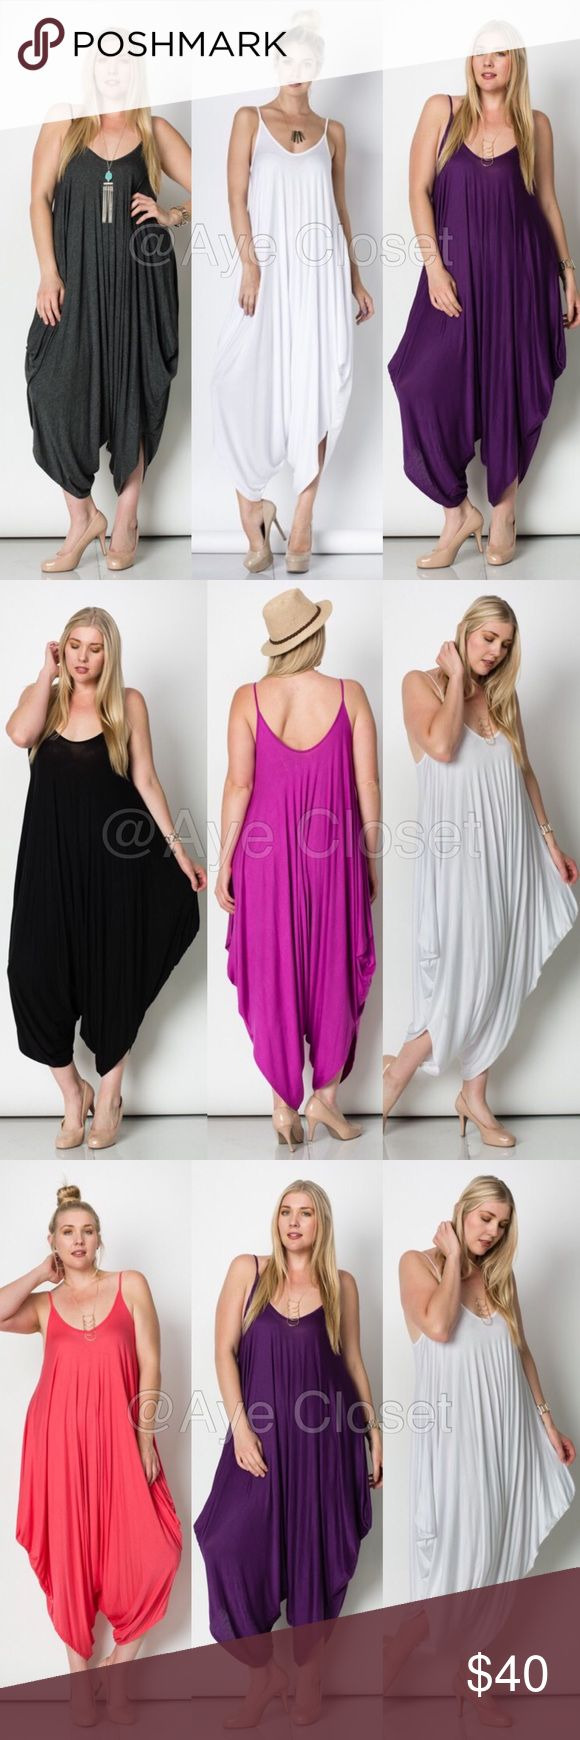 plus size harem oversized loose fit jumpsuit dress price is firm unless bundled✍Retail, Brand new without tags. Fabric Content : rayon + spandex  Trendy plus size Boho chic jumpsuit, palazzo harem pant dress choose from. ⚡️Choose from black or white.. ▶️black-(1X, 2x,3X) ▶️white(1X,2X,3X) (It's little thinner in white and might show little sheerness)  Oversized Loose fit drape harem Romper jumpsuit super comfy and breathable fabric... Boutique Pants Jumpsuits & Rompers